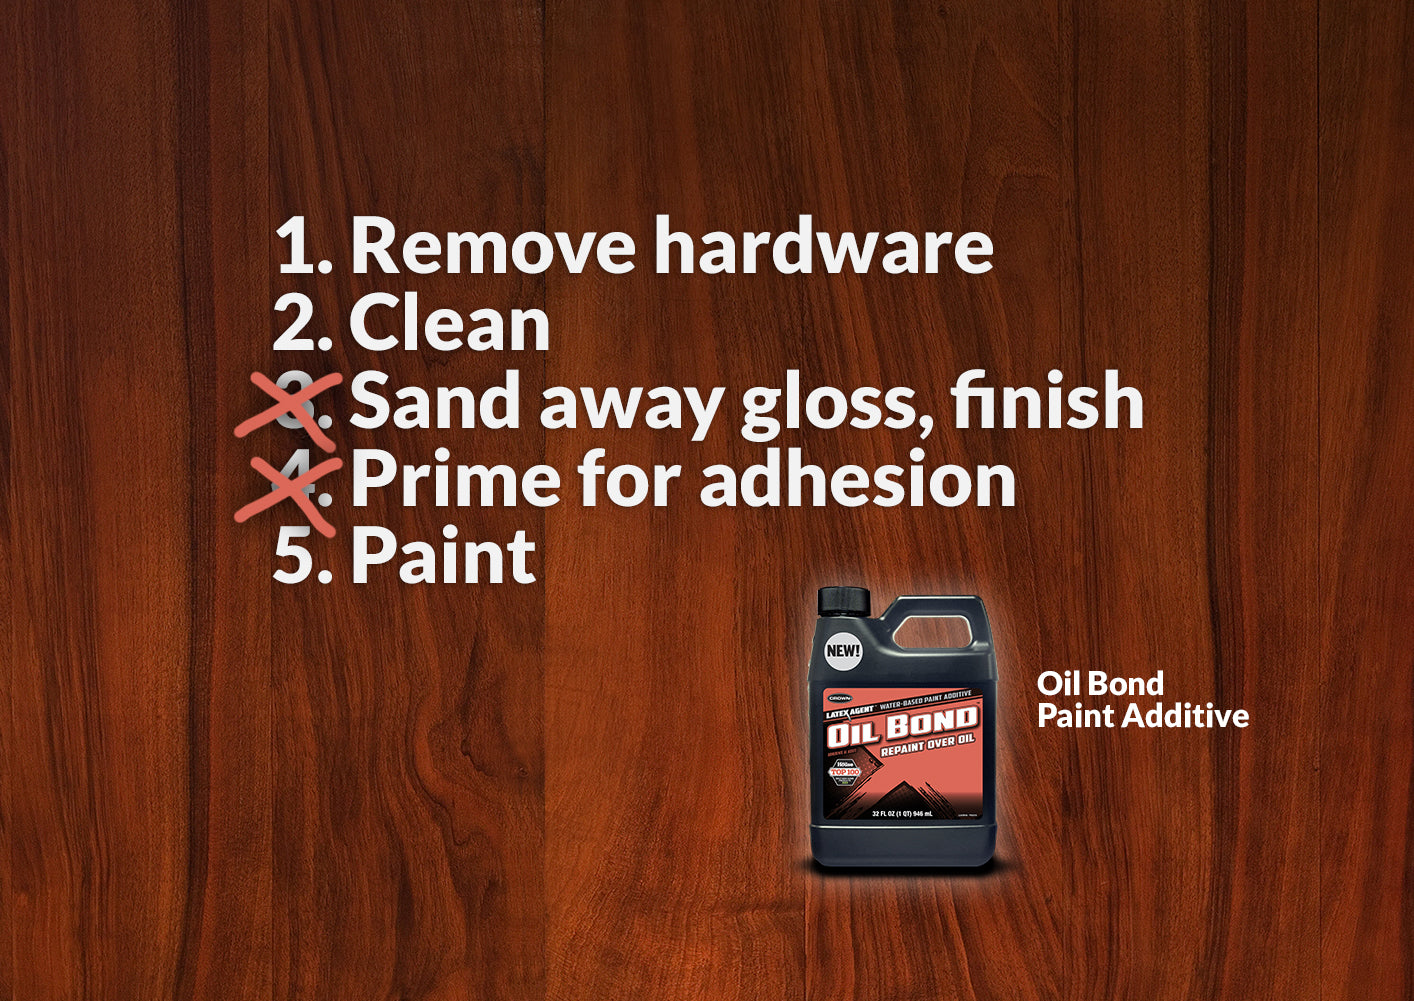 How To Paint Stained Wood: From Five Steps To Three